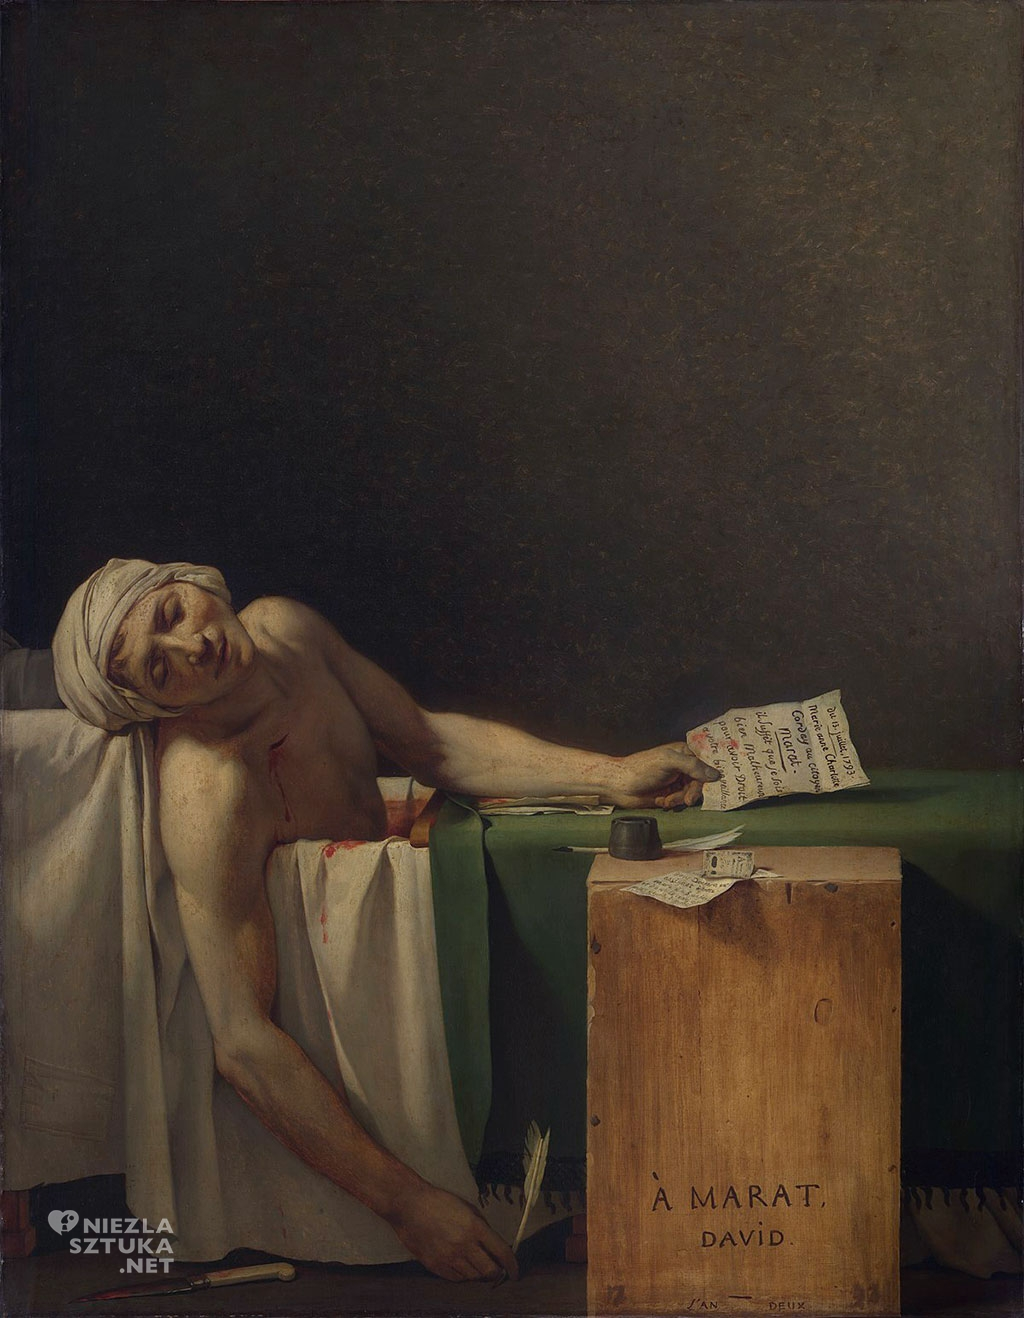 Jacques Louis David Śmierć Marata